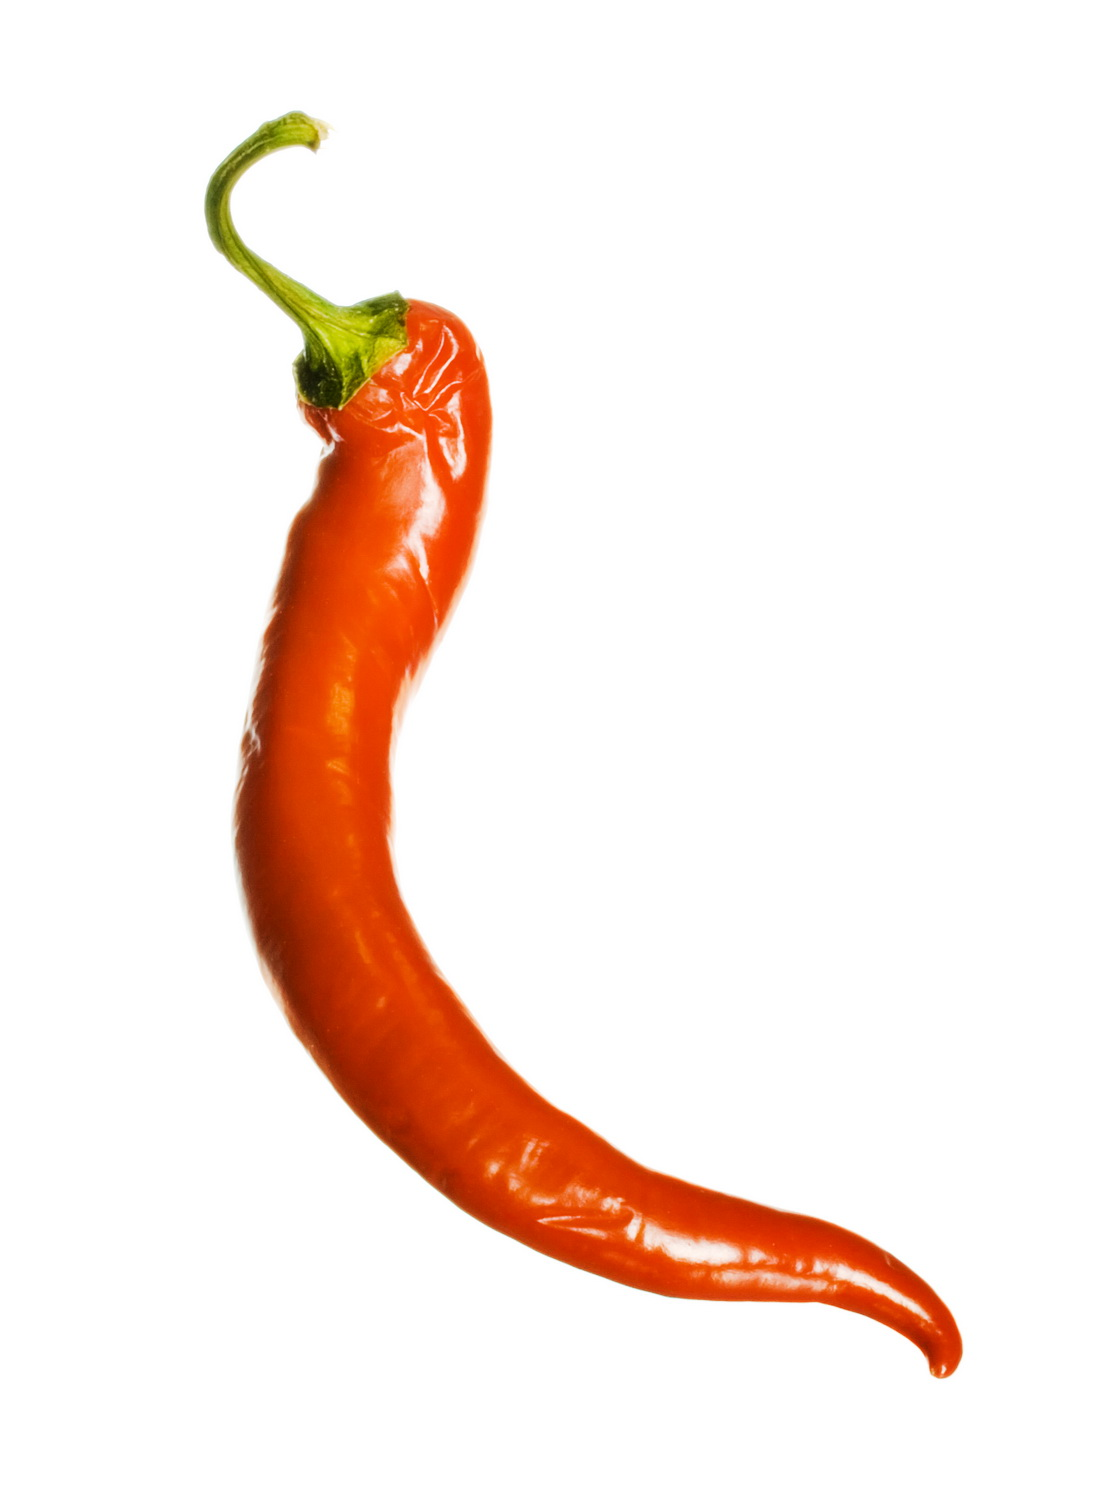 Red chilli pepper, Burning, Isolated, Studio, Spice, HQ Photo